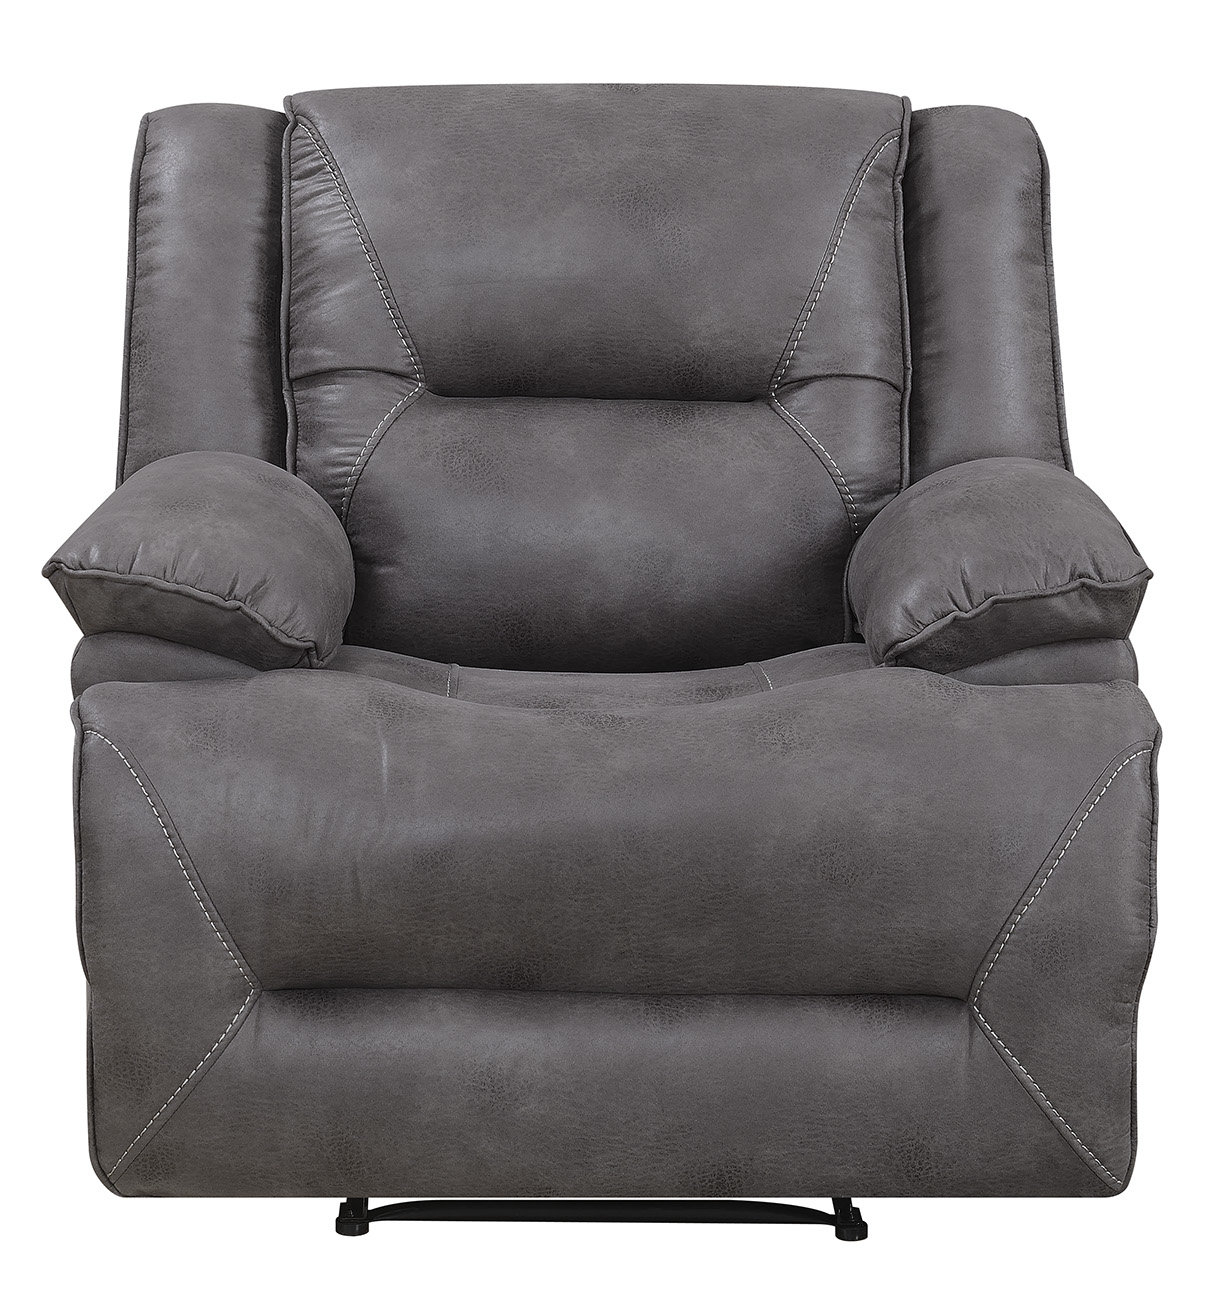 Darby Home Co Finlay Recliner | Wayfair Throughout Dale Iii Polyurethane Swivel Glider Recliners (Image 11 of 25)